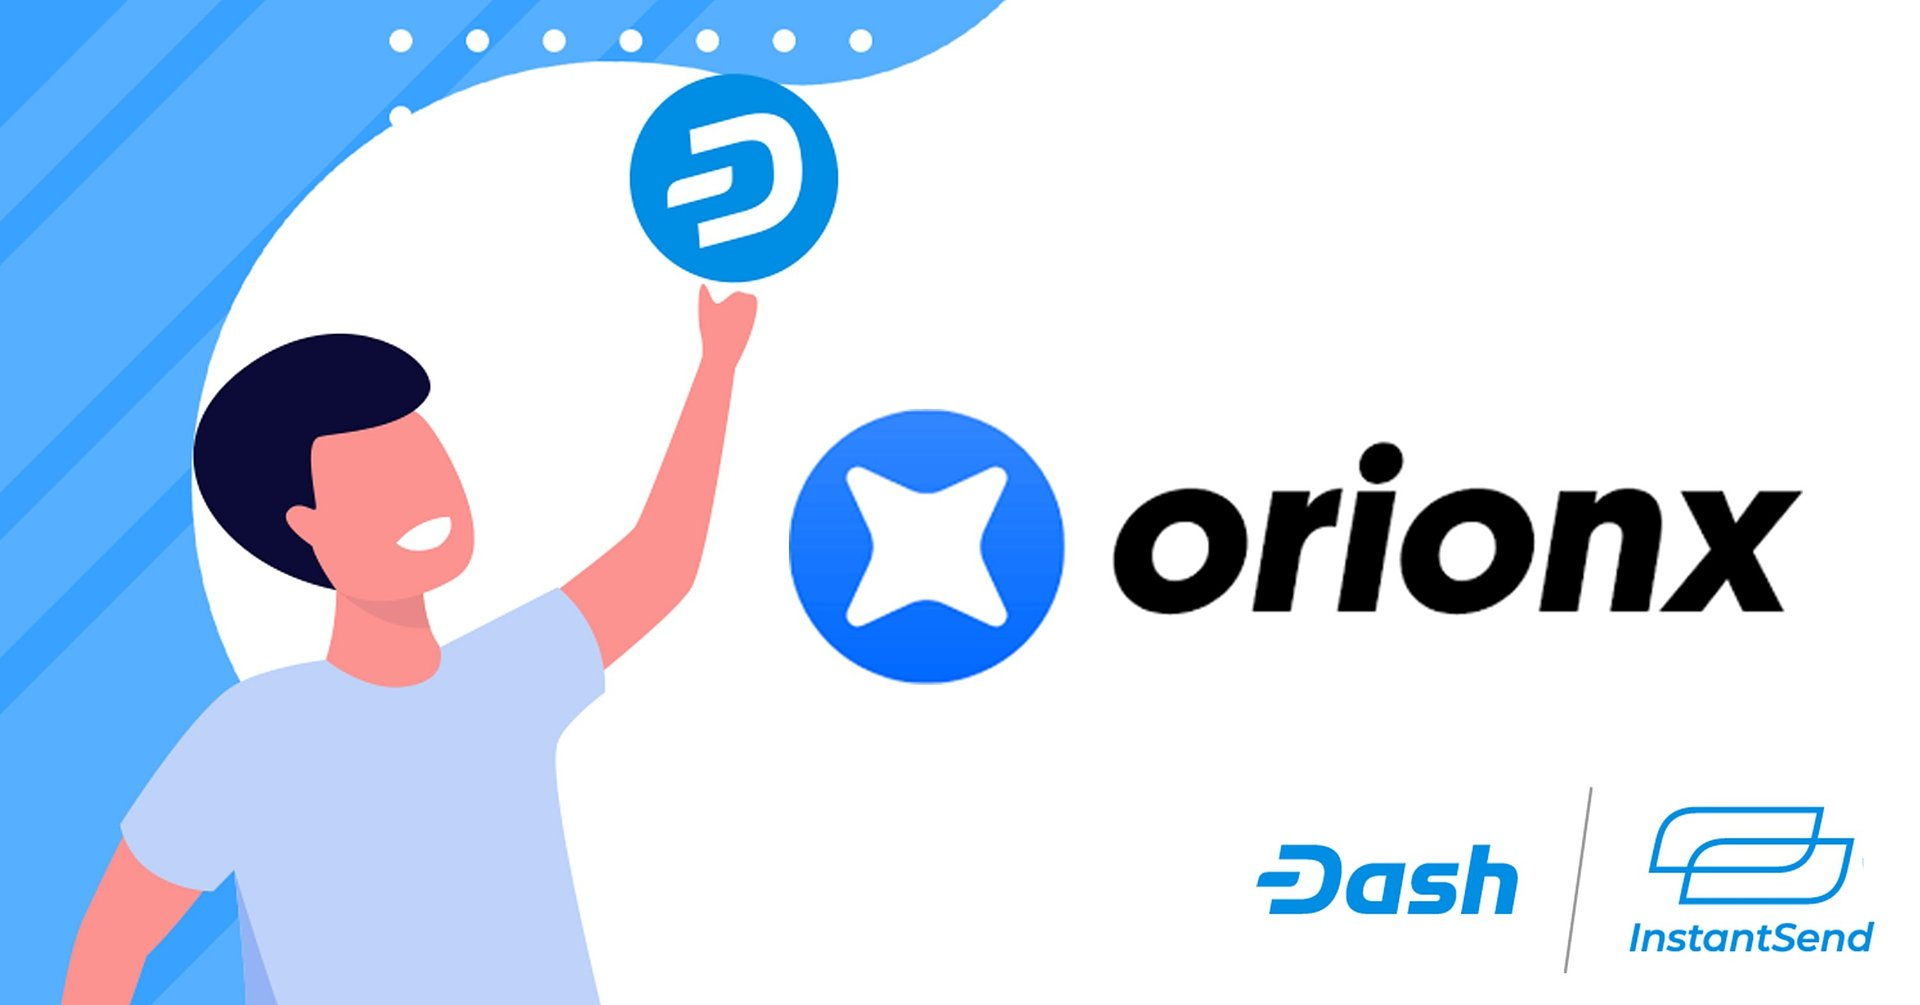 Dash InstantSend Enabled On OrionX, Chile's Most Advanced Crypto Platform